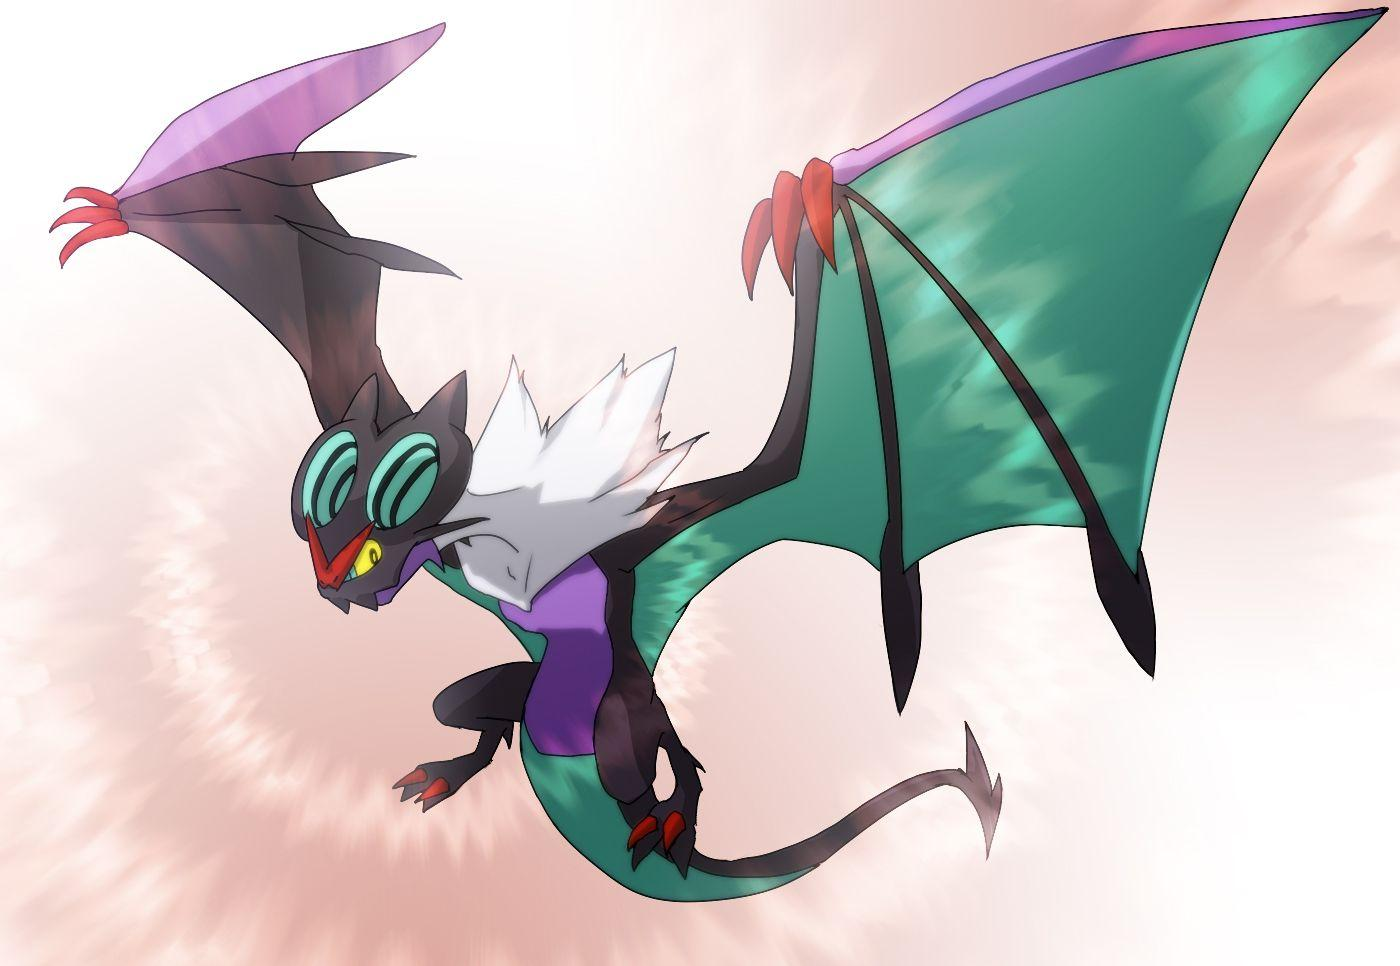 Noivern - Pokémon | page 2 of 3 - Zerochan Anime Image Board